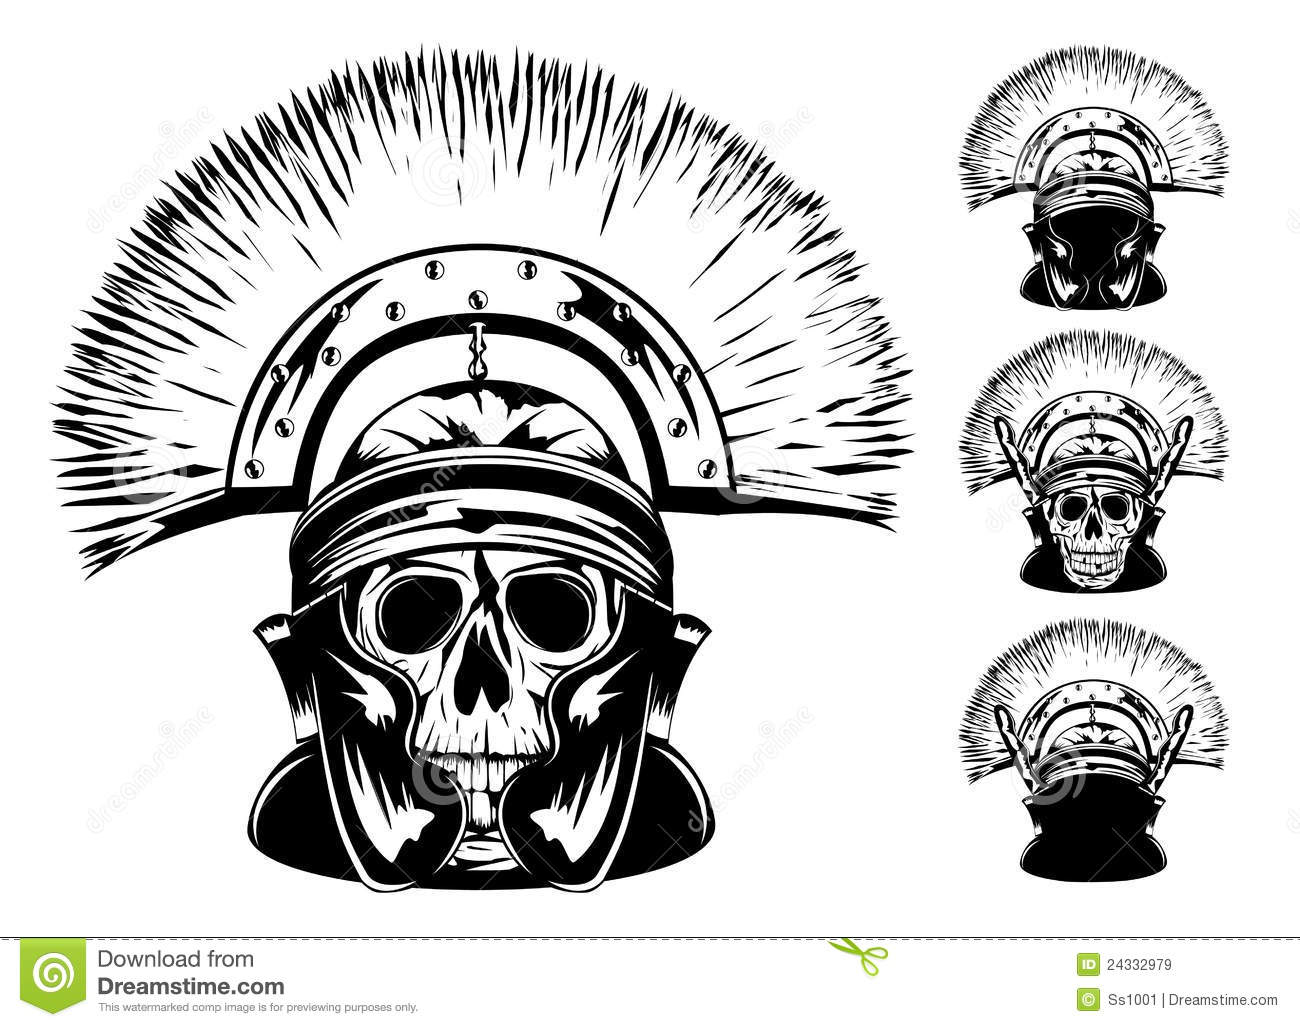 Skull in helmet stock vector. Illustration of antique